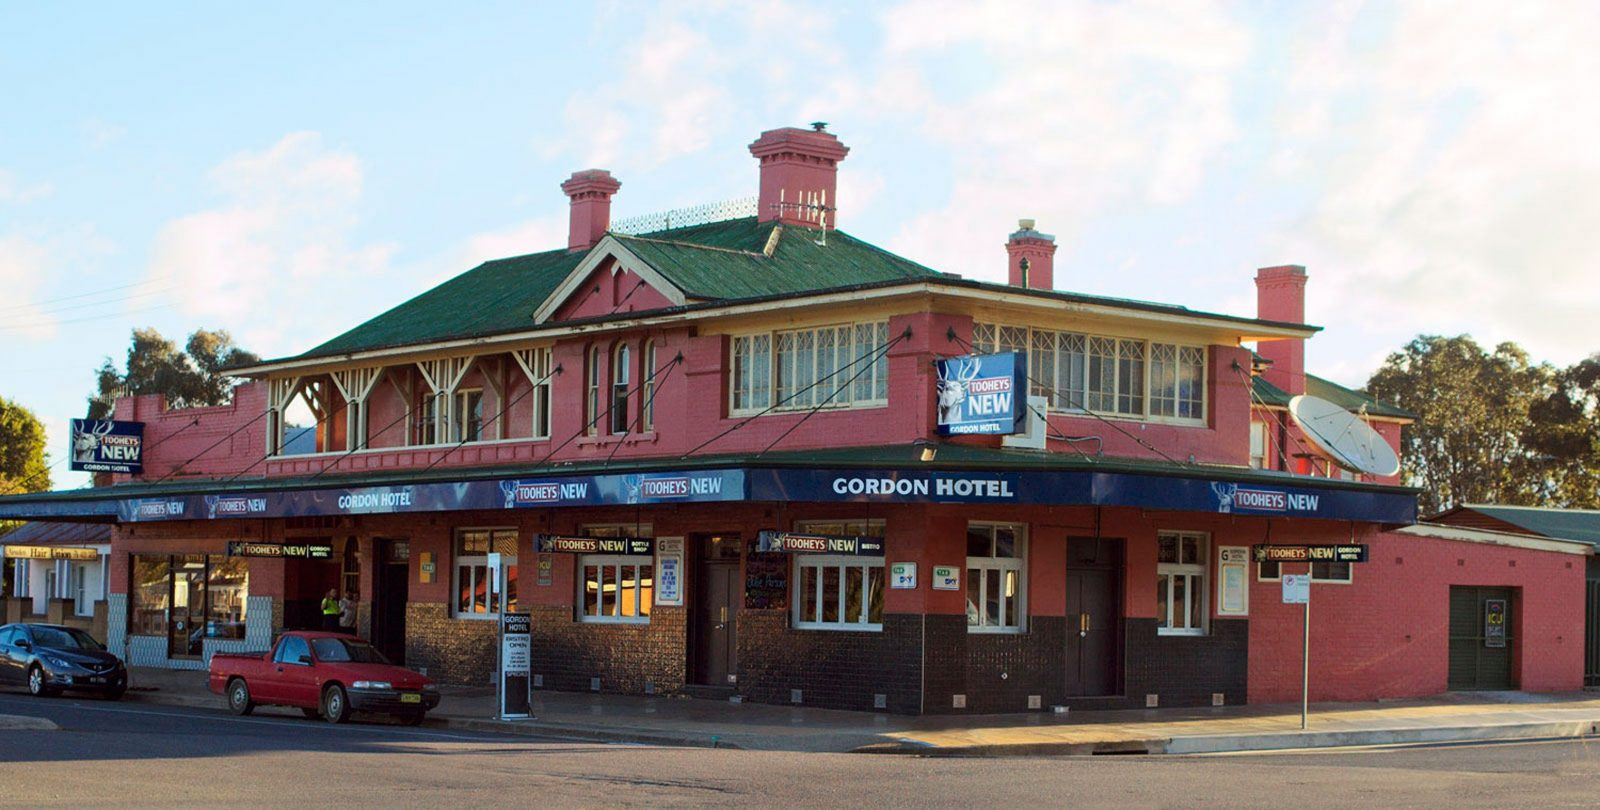 The Gordon Hotel frontage